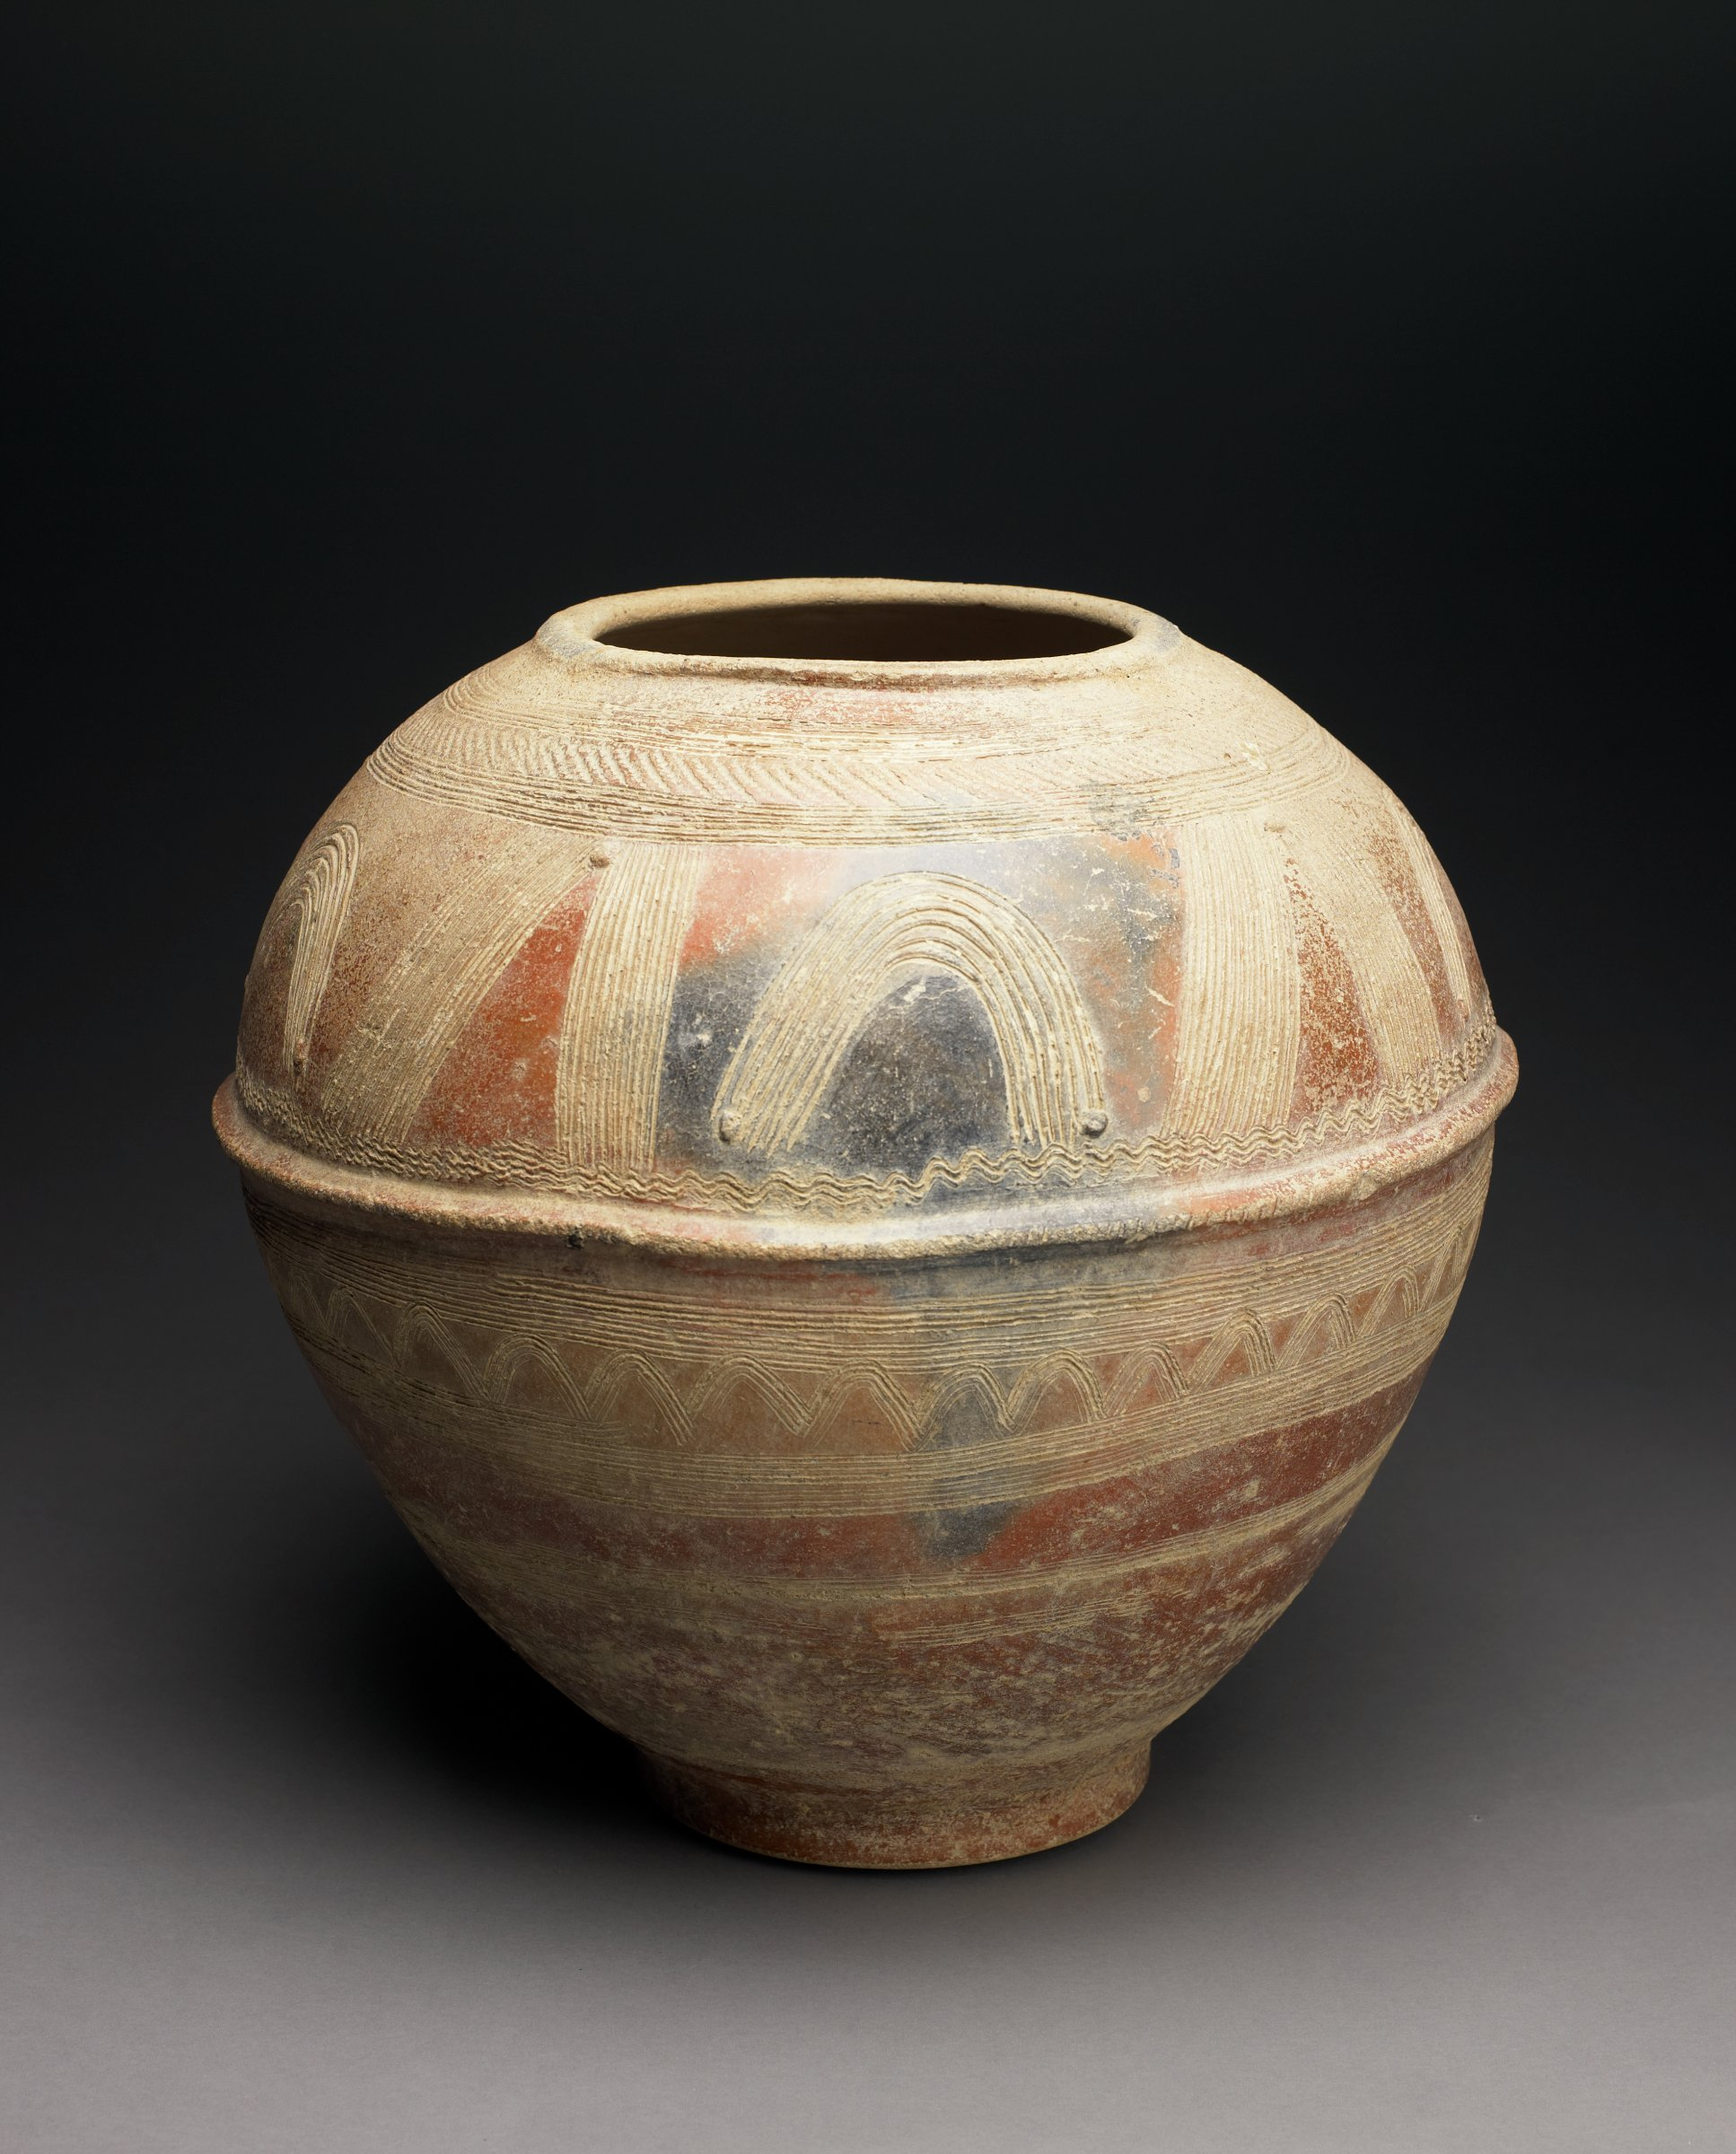 Large round jar with foot, narrows slightly toward the bottom. Raised ridge around widest portion of vessel. Shoulder decorated with groups of angled and curved parallel incised lines; bottom half with incised geometric patterns. Reddish color with fire clouds.